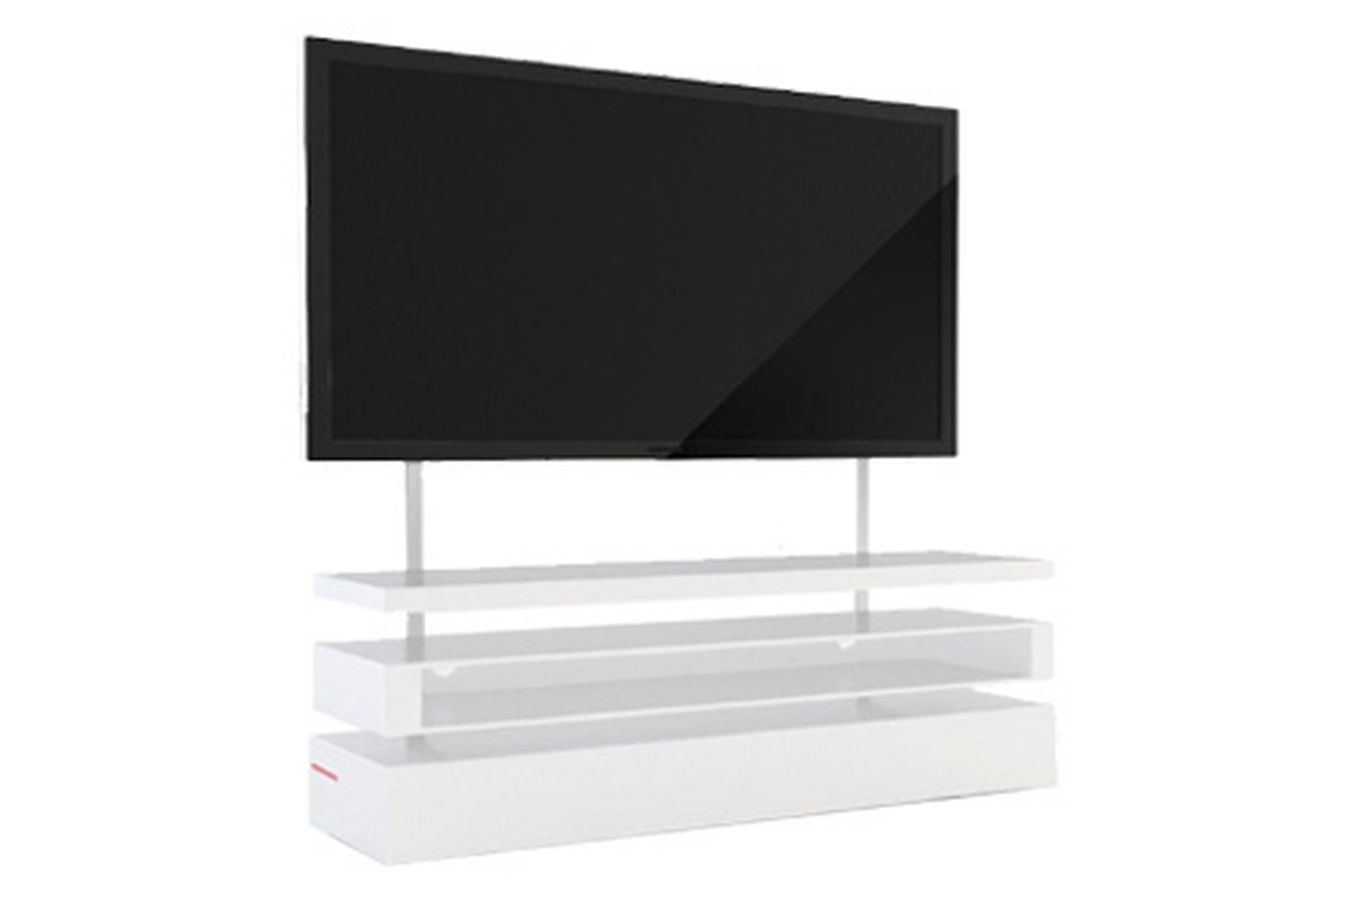 Meuble Destockage Meuble Tv Samsung F-napoli-sam/w (3291812) | Darty